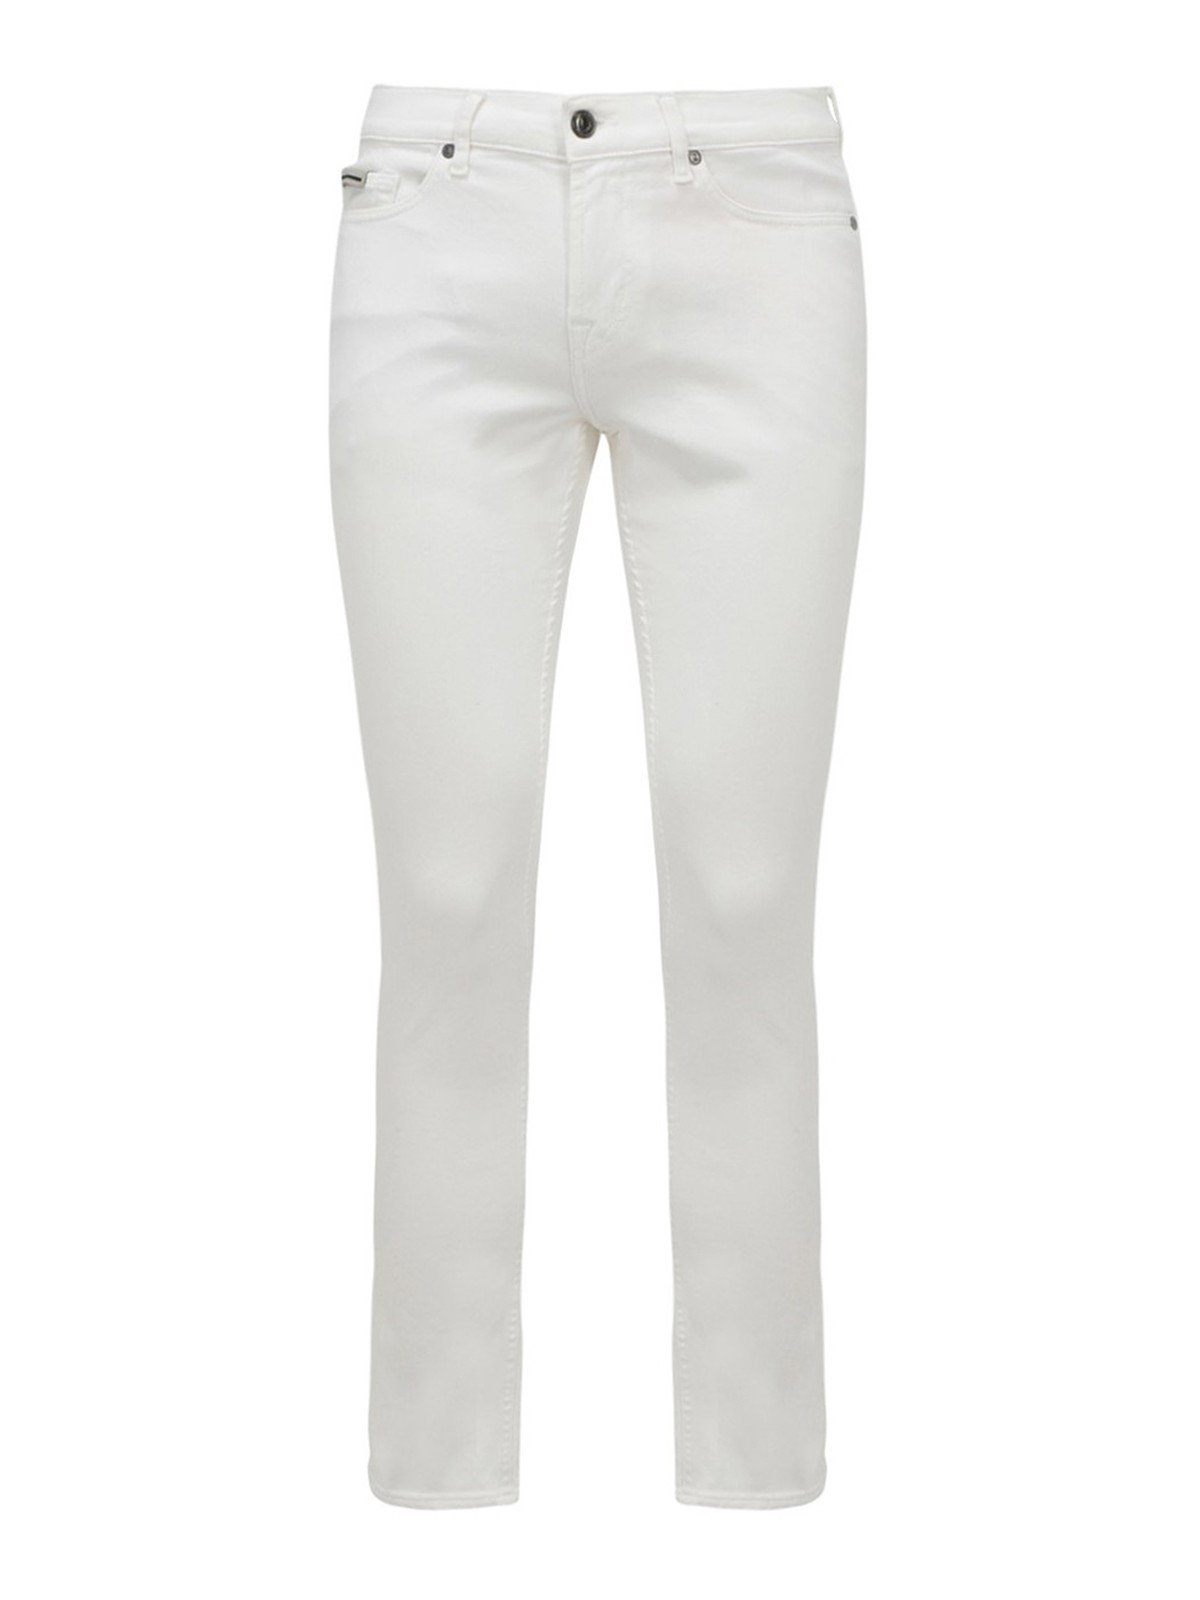 7 For All Mankind RONNIE SKINNY JEANS